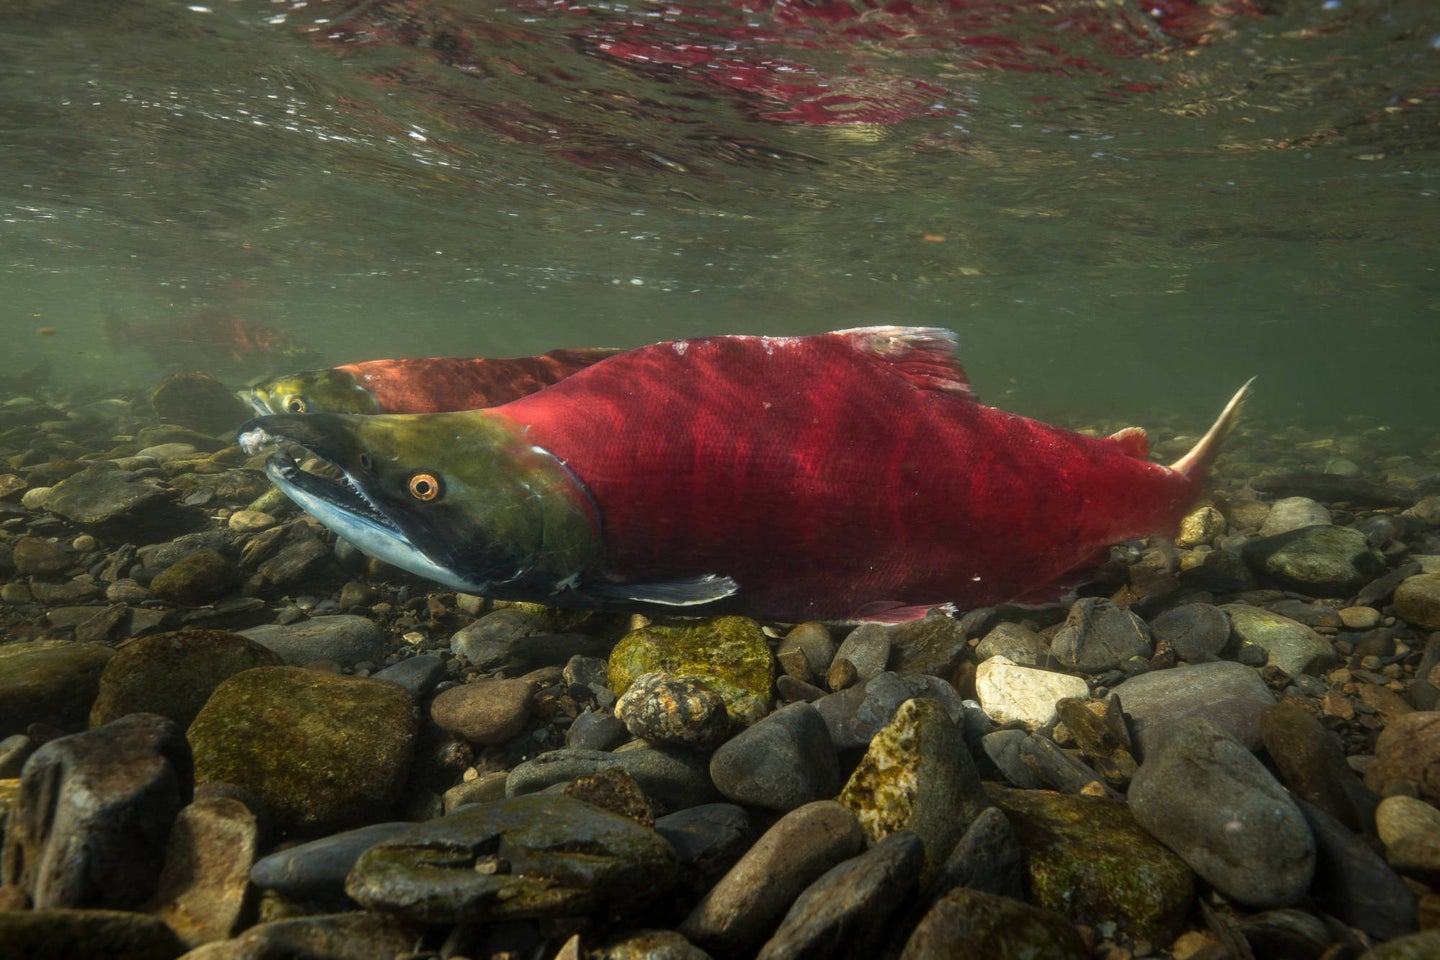 Red sockeye salmon with hooked jaw swimming in Alaska stream.